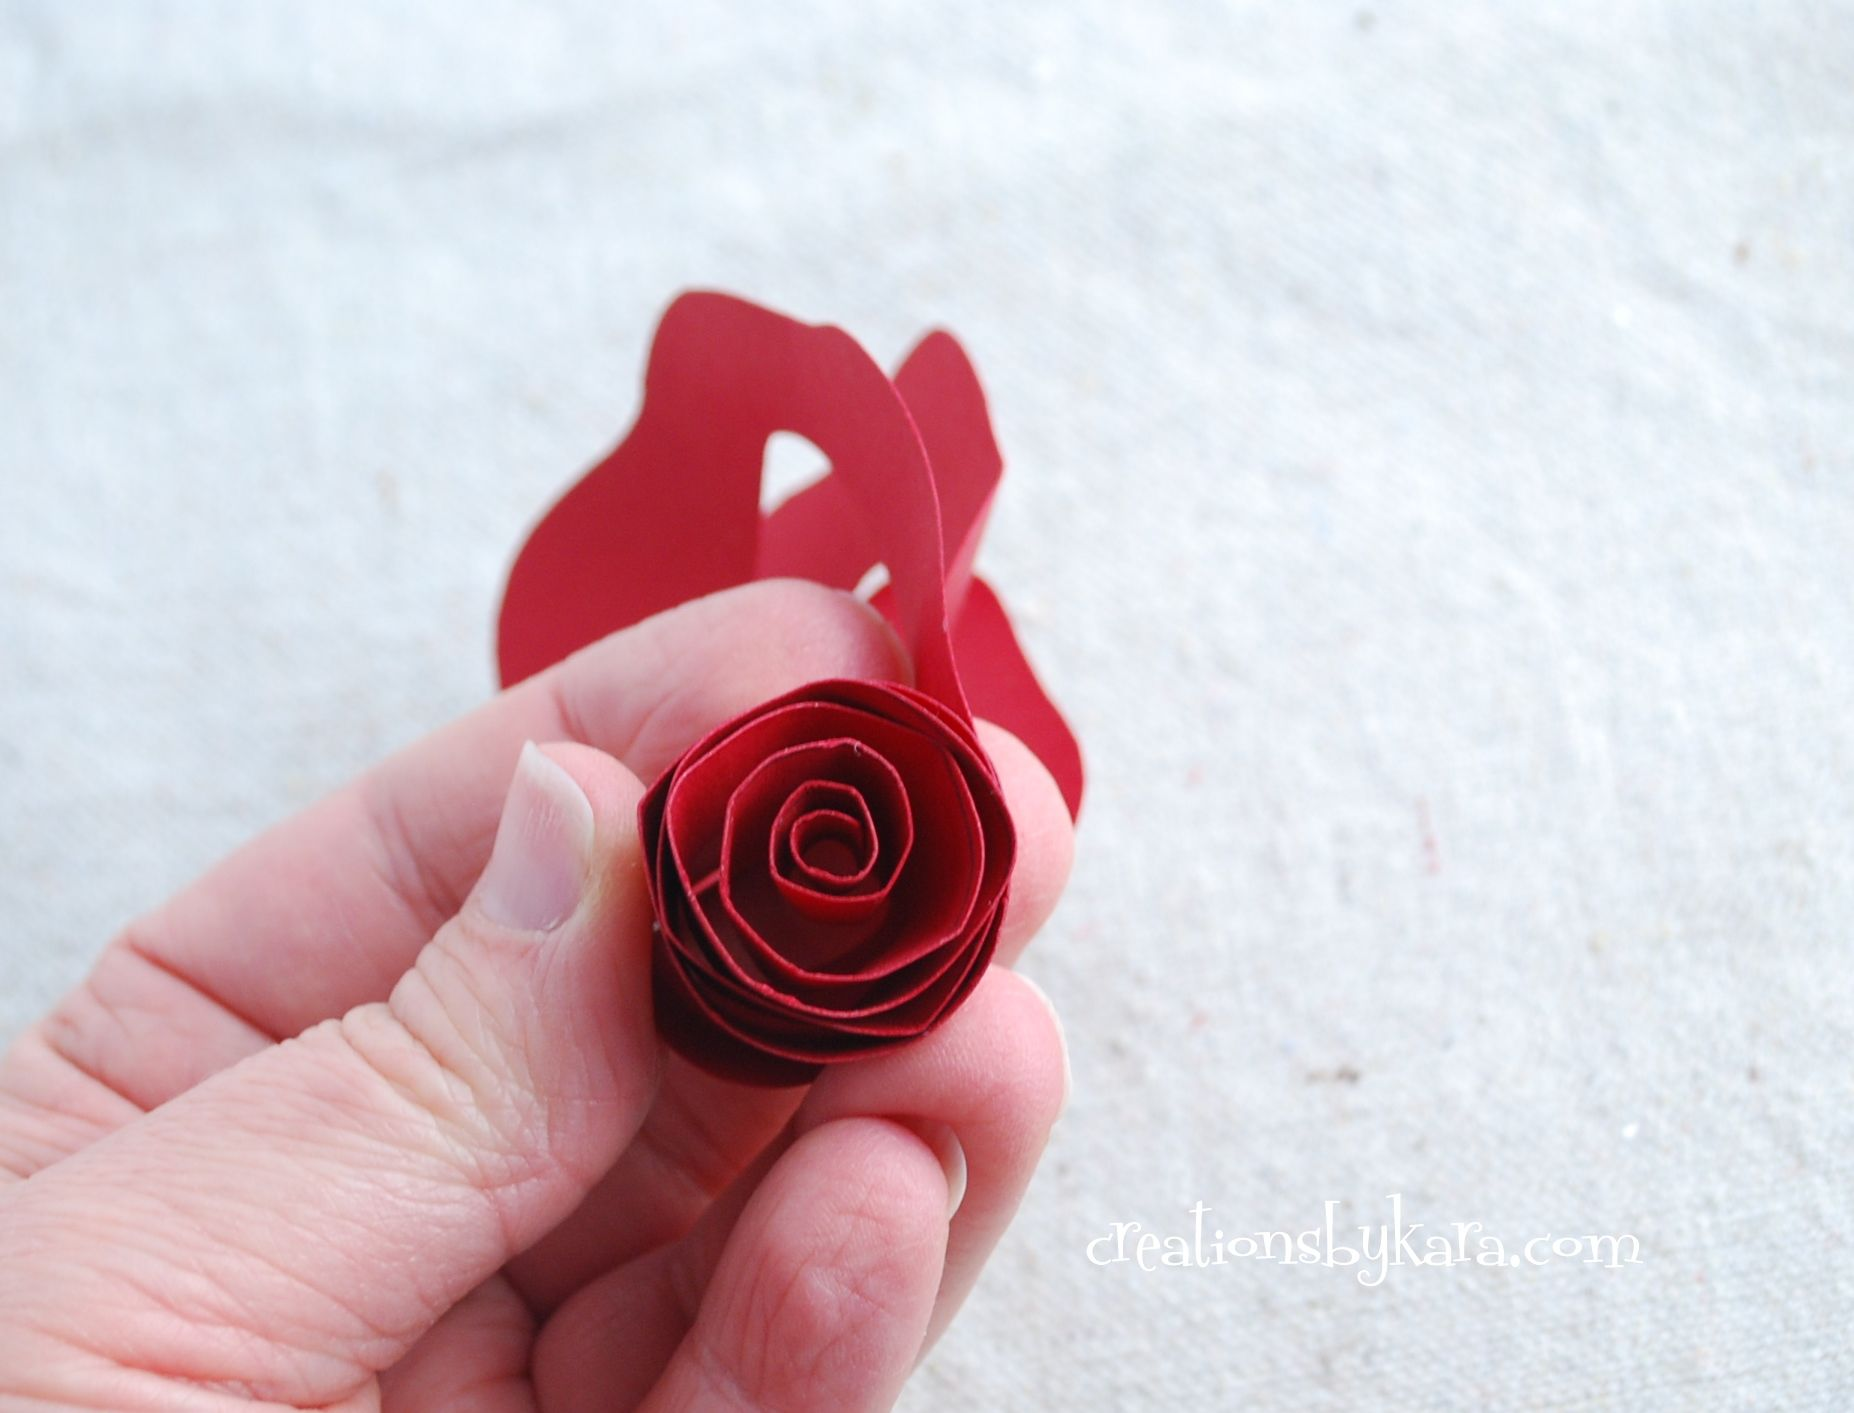 Paper Flower Roses December 20 2011 By Kara 1 Comment Crafts